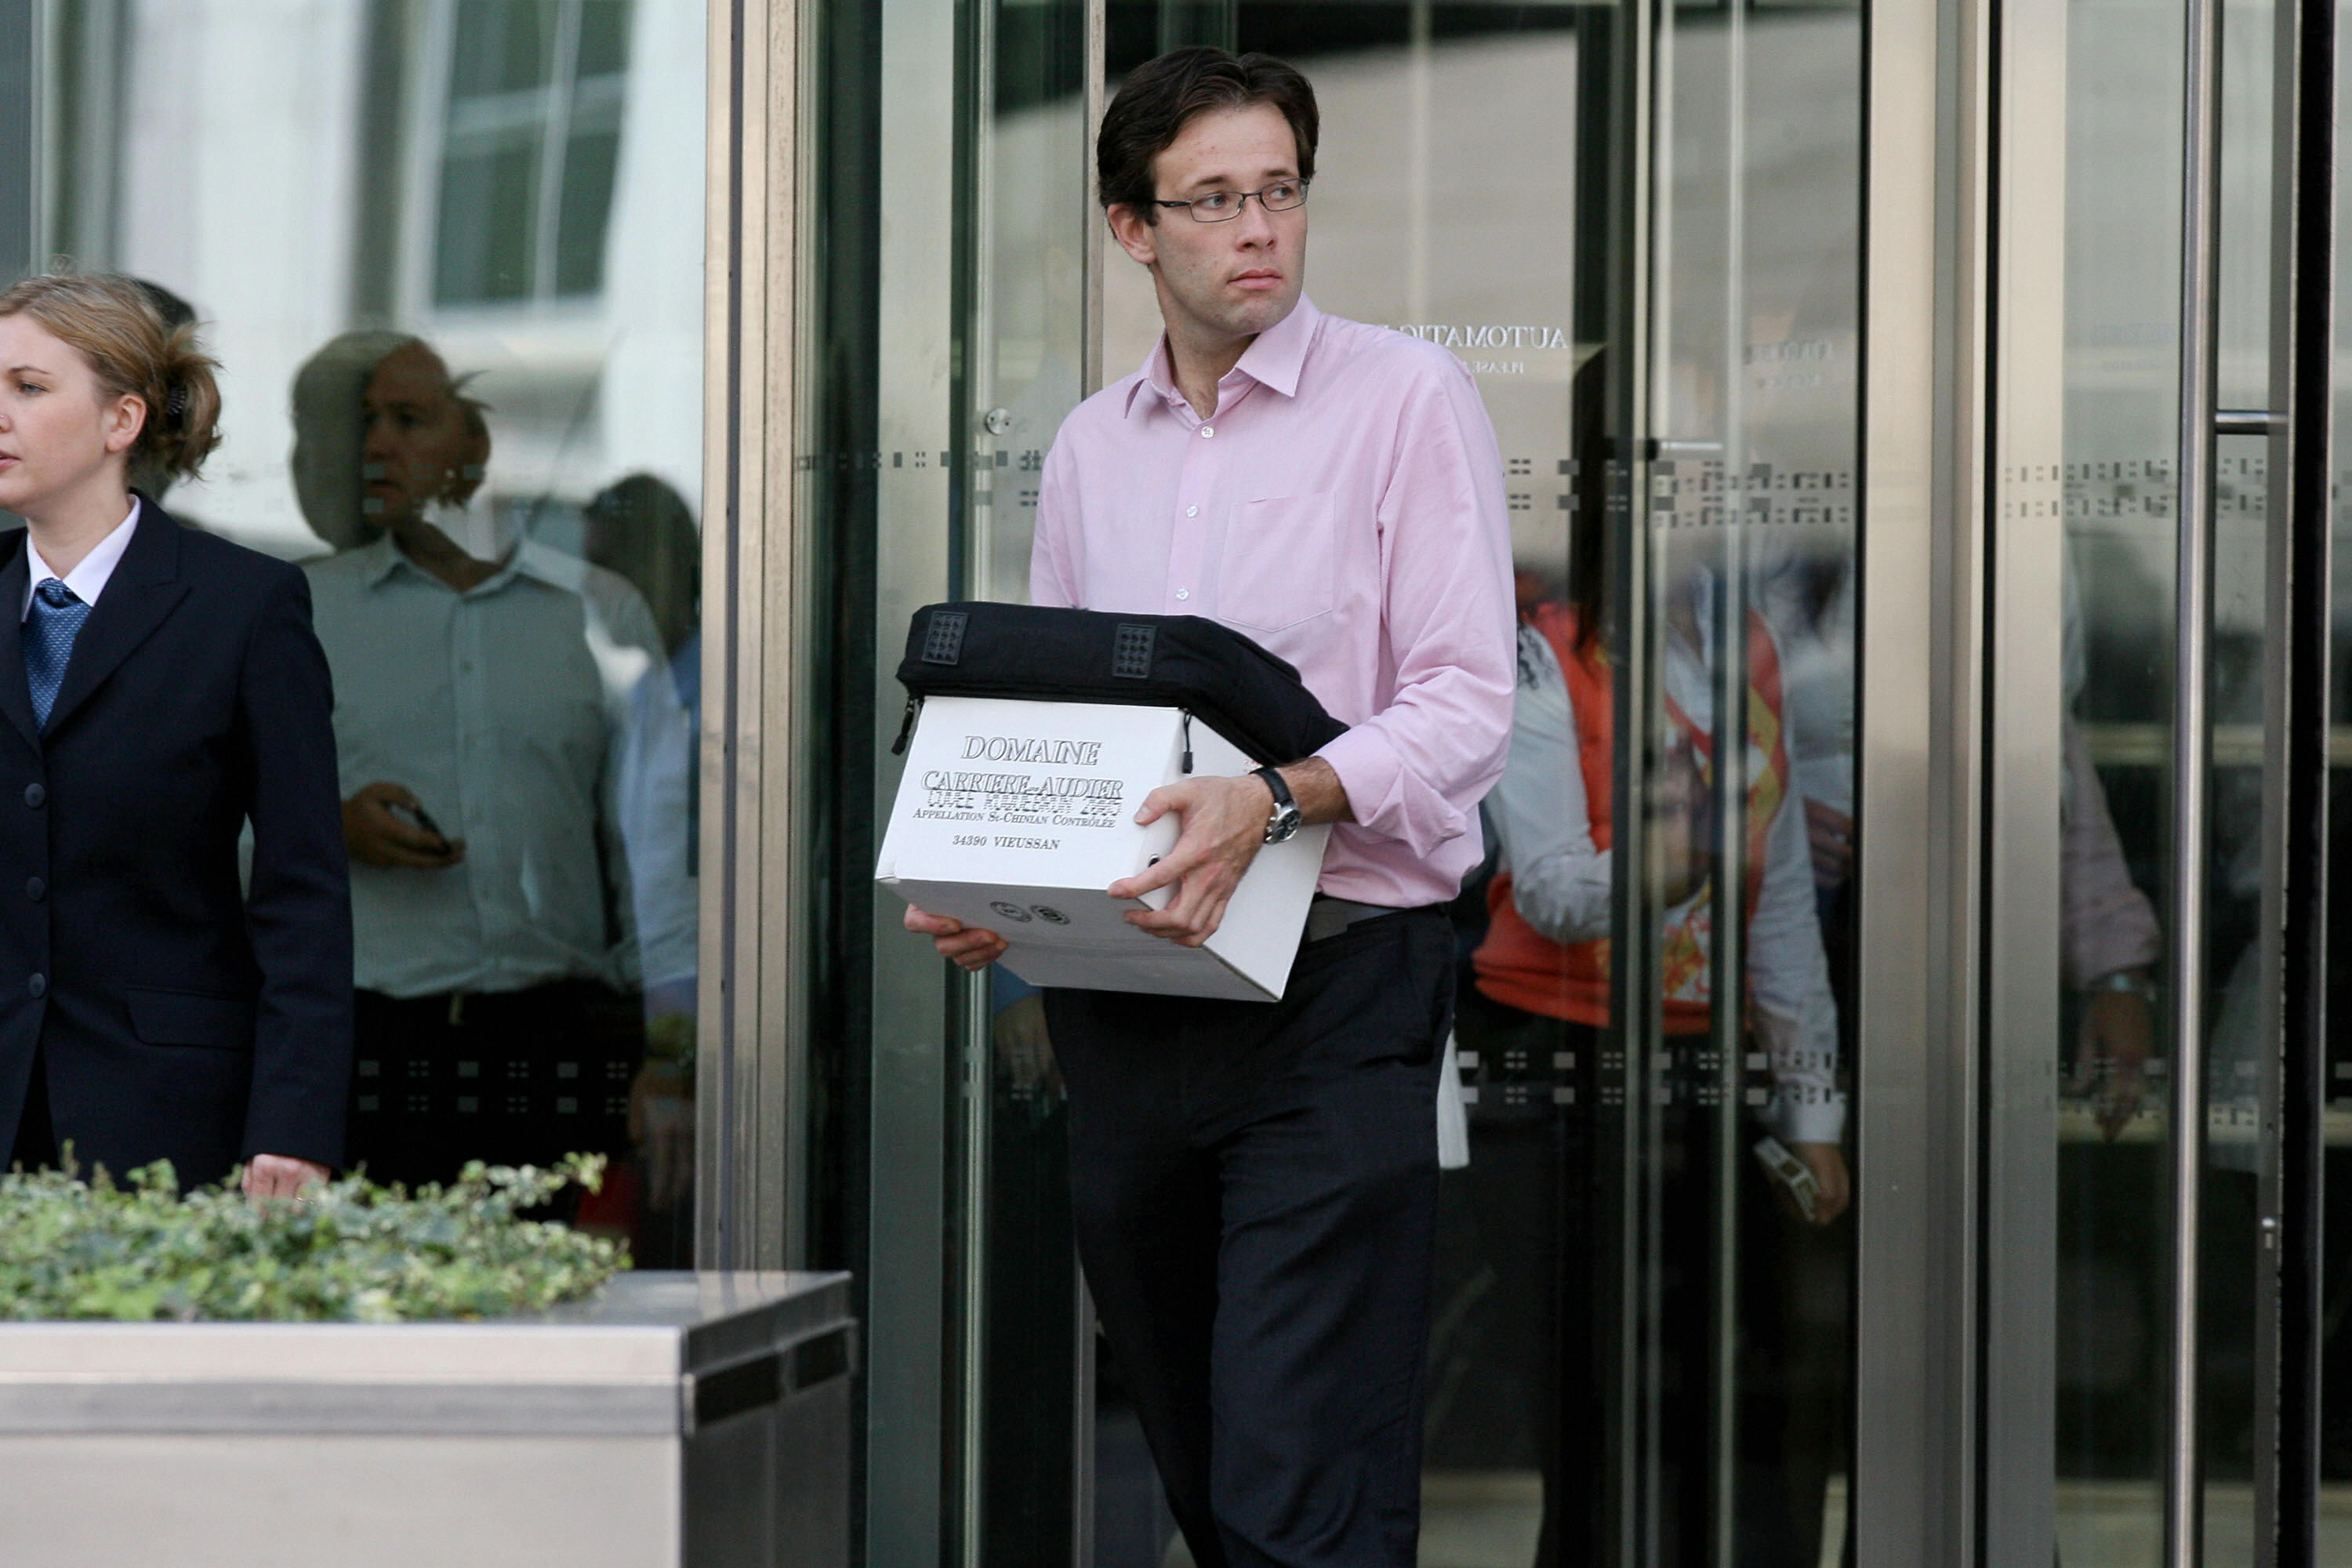 A man carrying a box leaves the Lehman Brothers European Headquarters building in Canary Wharf in east London, on September 15, 2008. The British arm of US investment giant Lehman Brothers has been put into administration, accountancy firm PriceWaterhouseCoopers said Monday. AFP PHOTO/Ben Stansall (Photo credit should read BEN STANSALL/AFP/Getty Images)